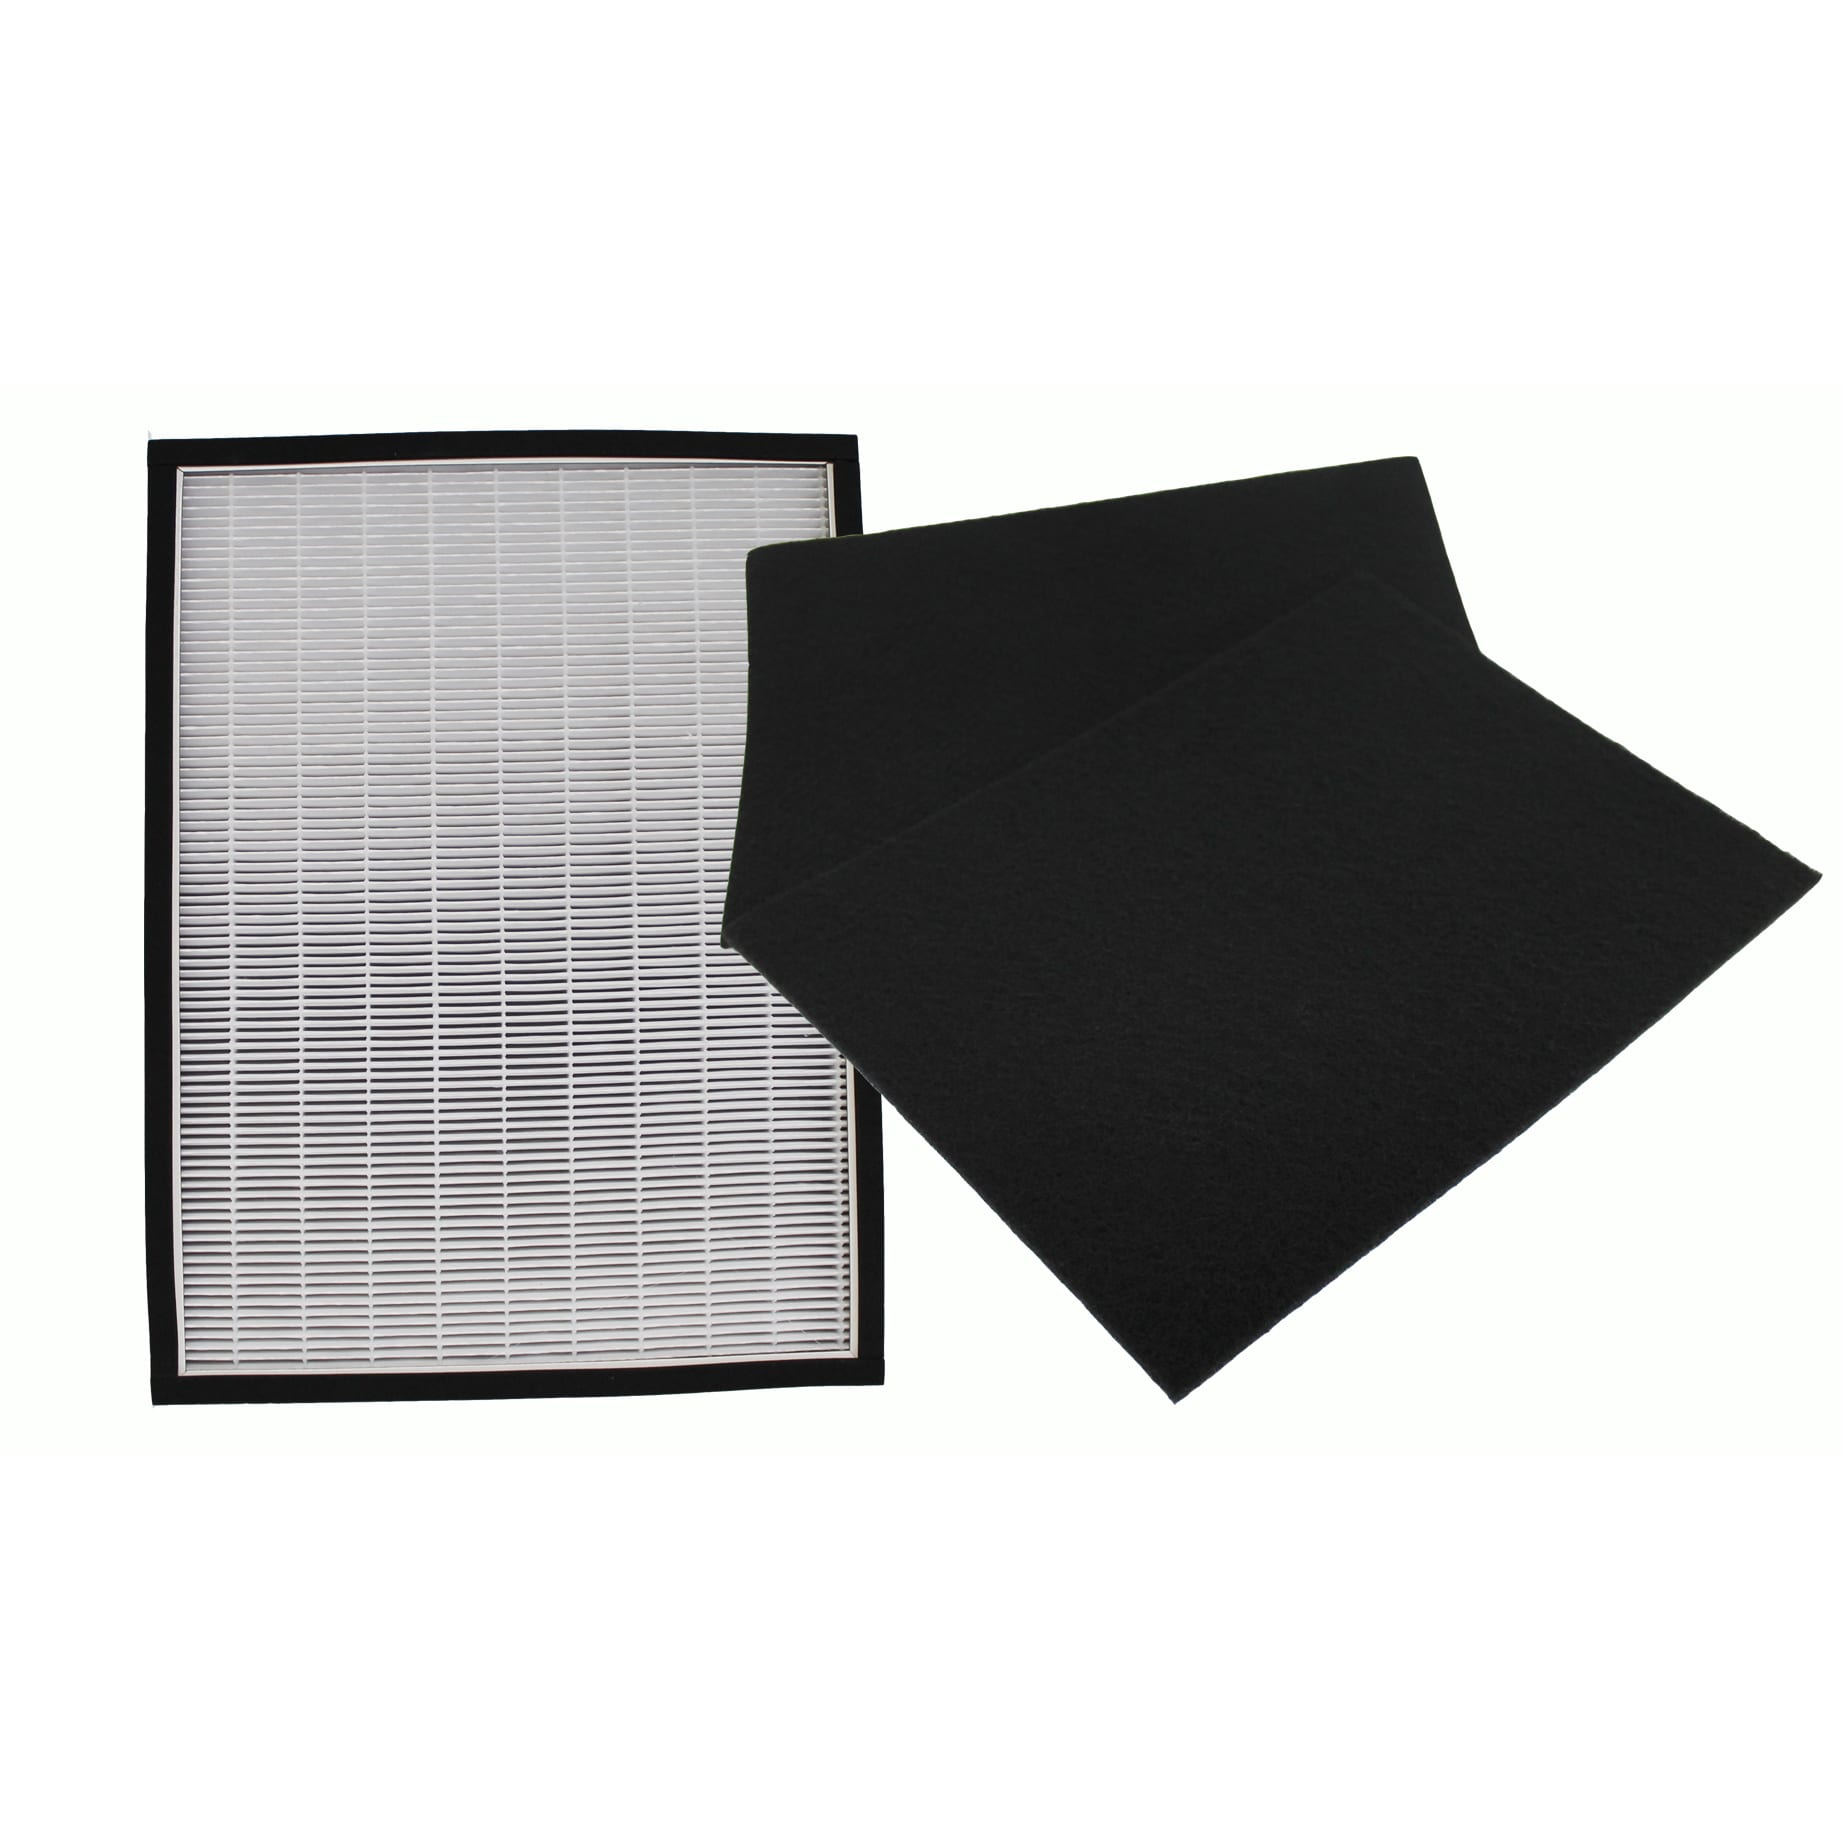 Crucial Oreck OptiMax Air 95-compatible Replacement Filte...